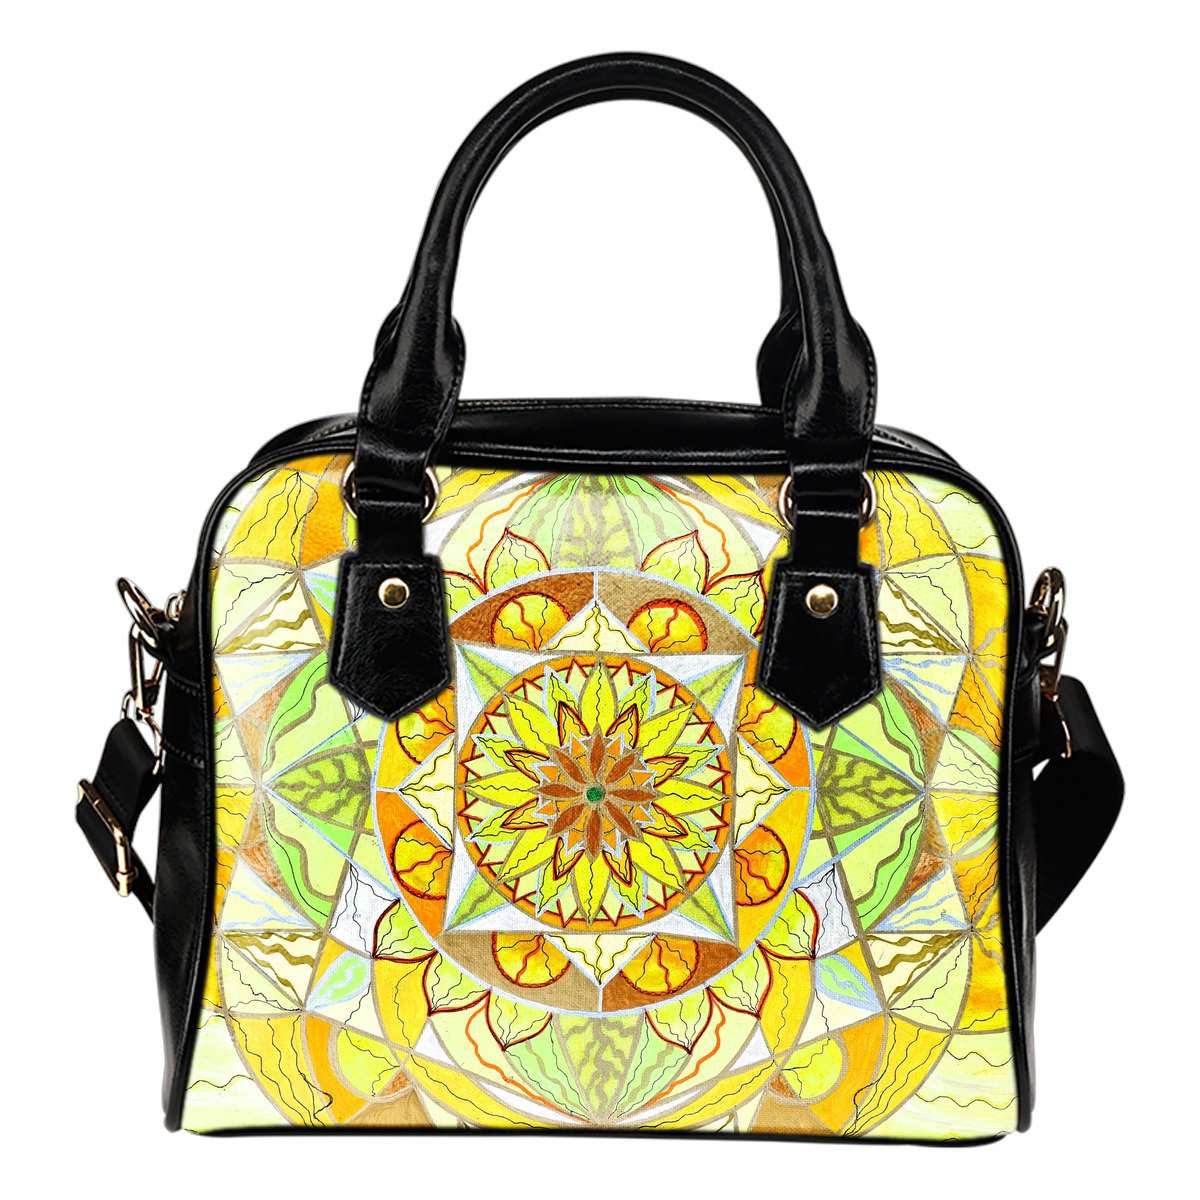 Joy - Vegan Shoulder Handbag